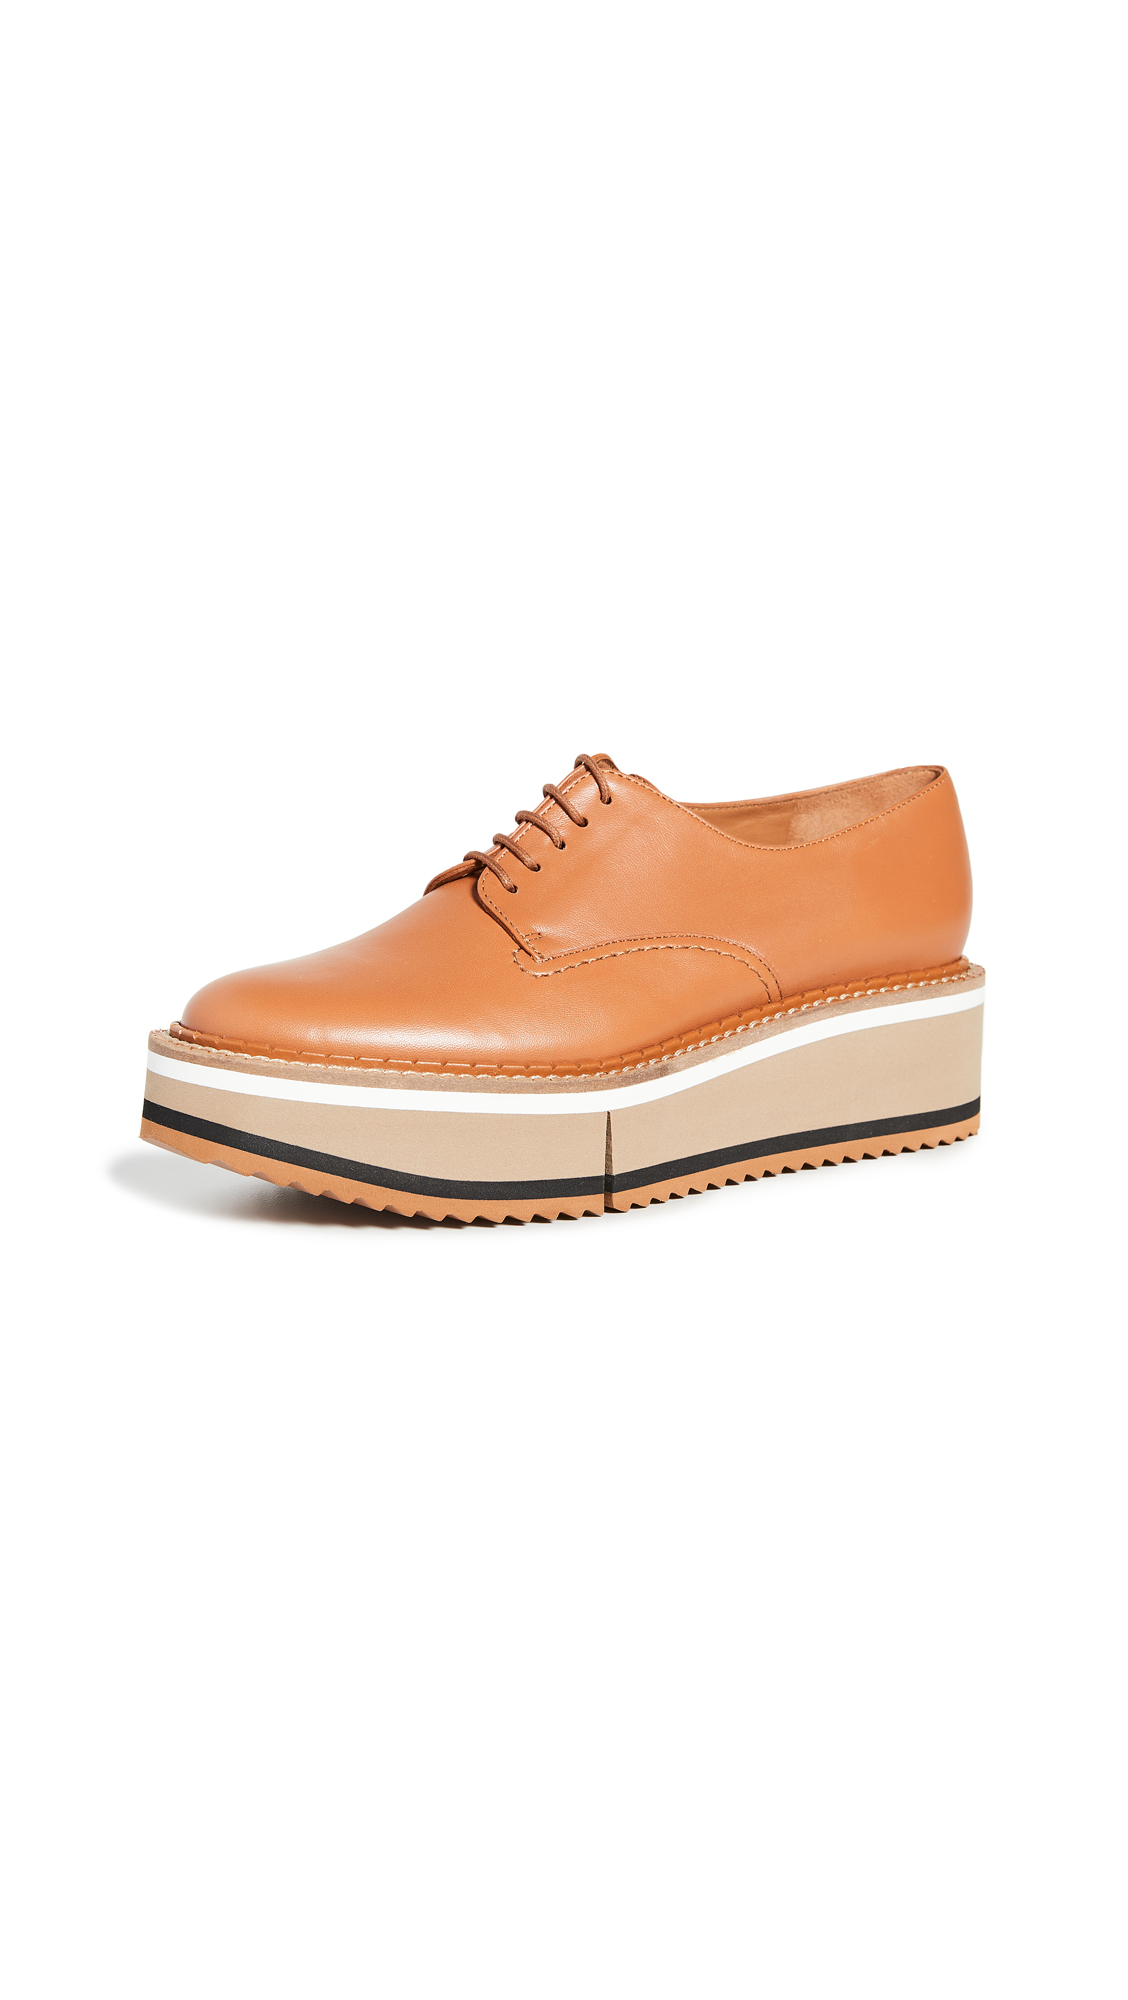 Clergerie Berlin 3 Oxfords - 40% Off Sale